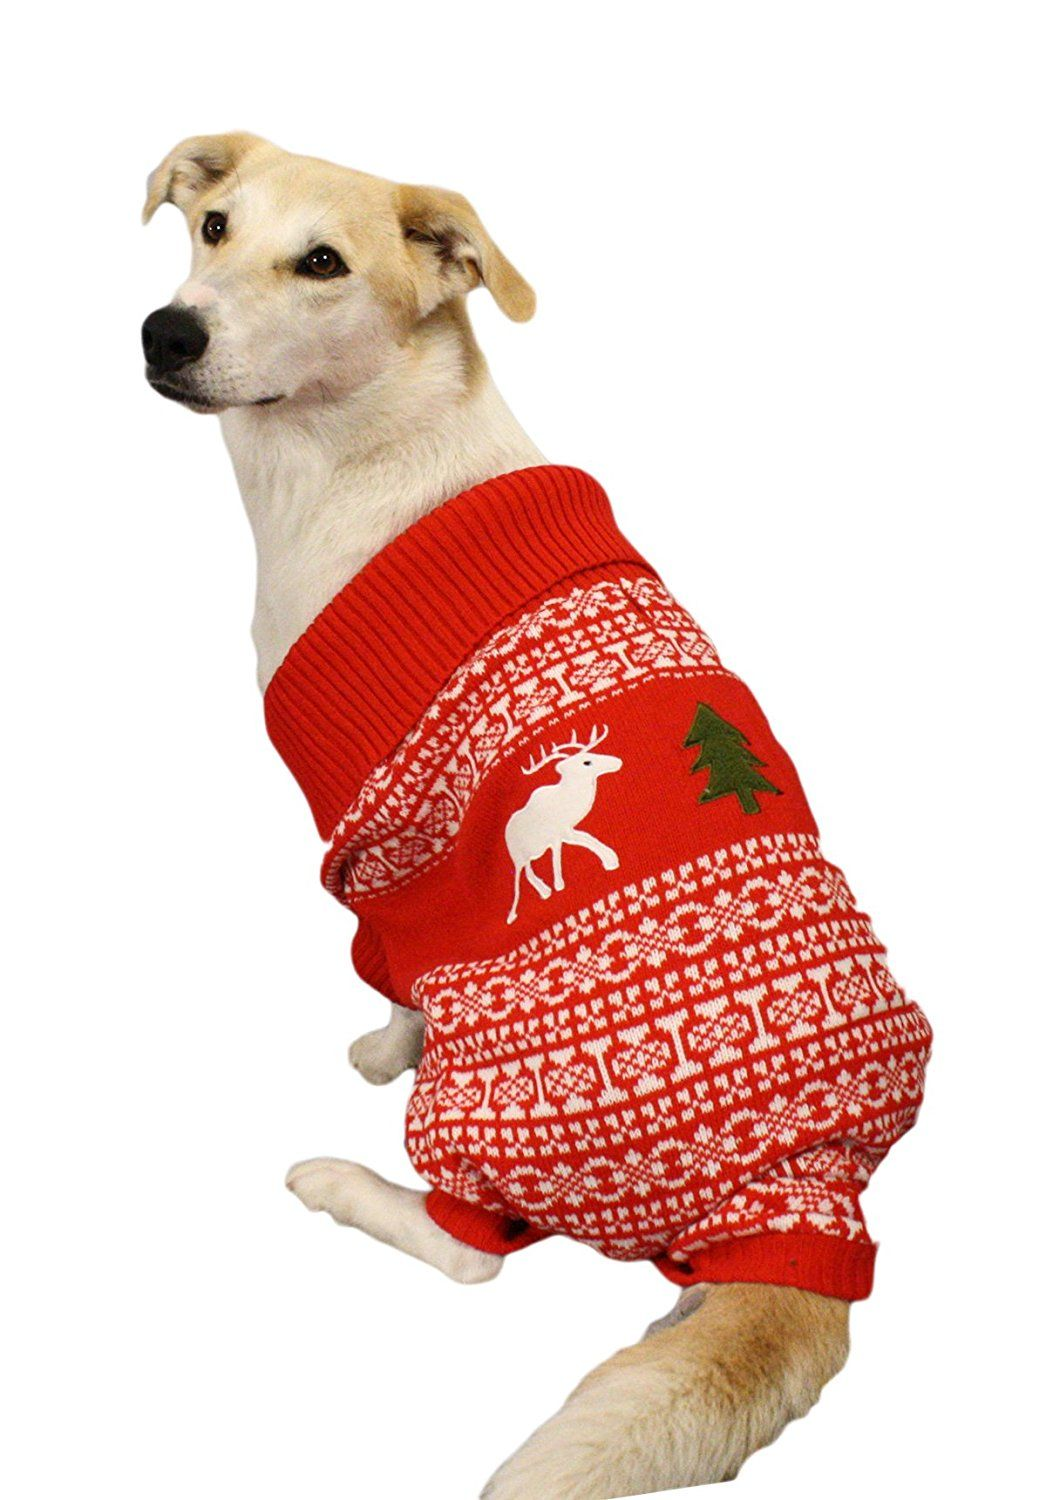 Holiday Reindeer Dog Sweater (Red) - Christmas Dog Sweater By Festified ***